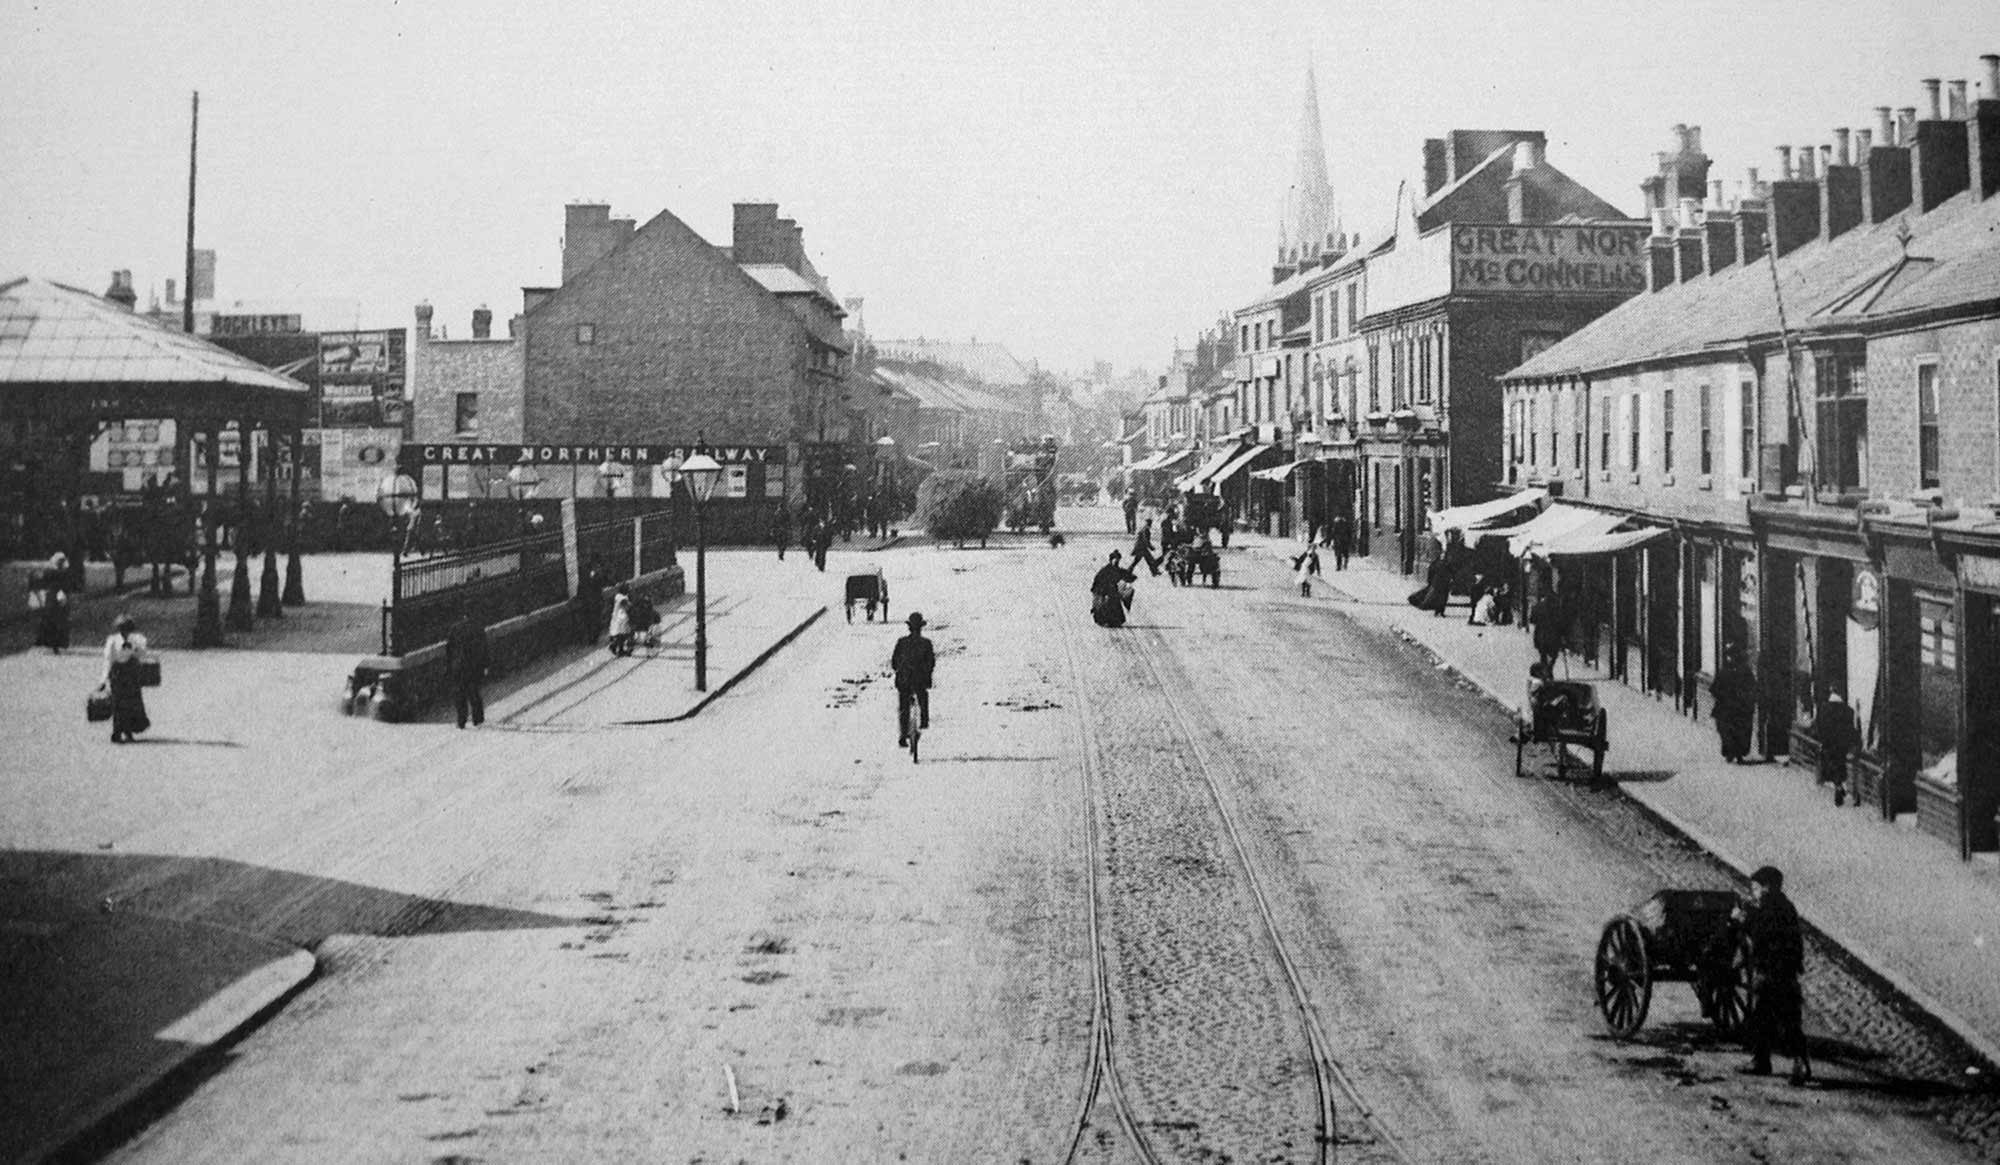 Belgrave Road near the old railway station, 1902 - Leicester and Leicestershire Record Office